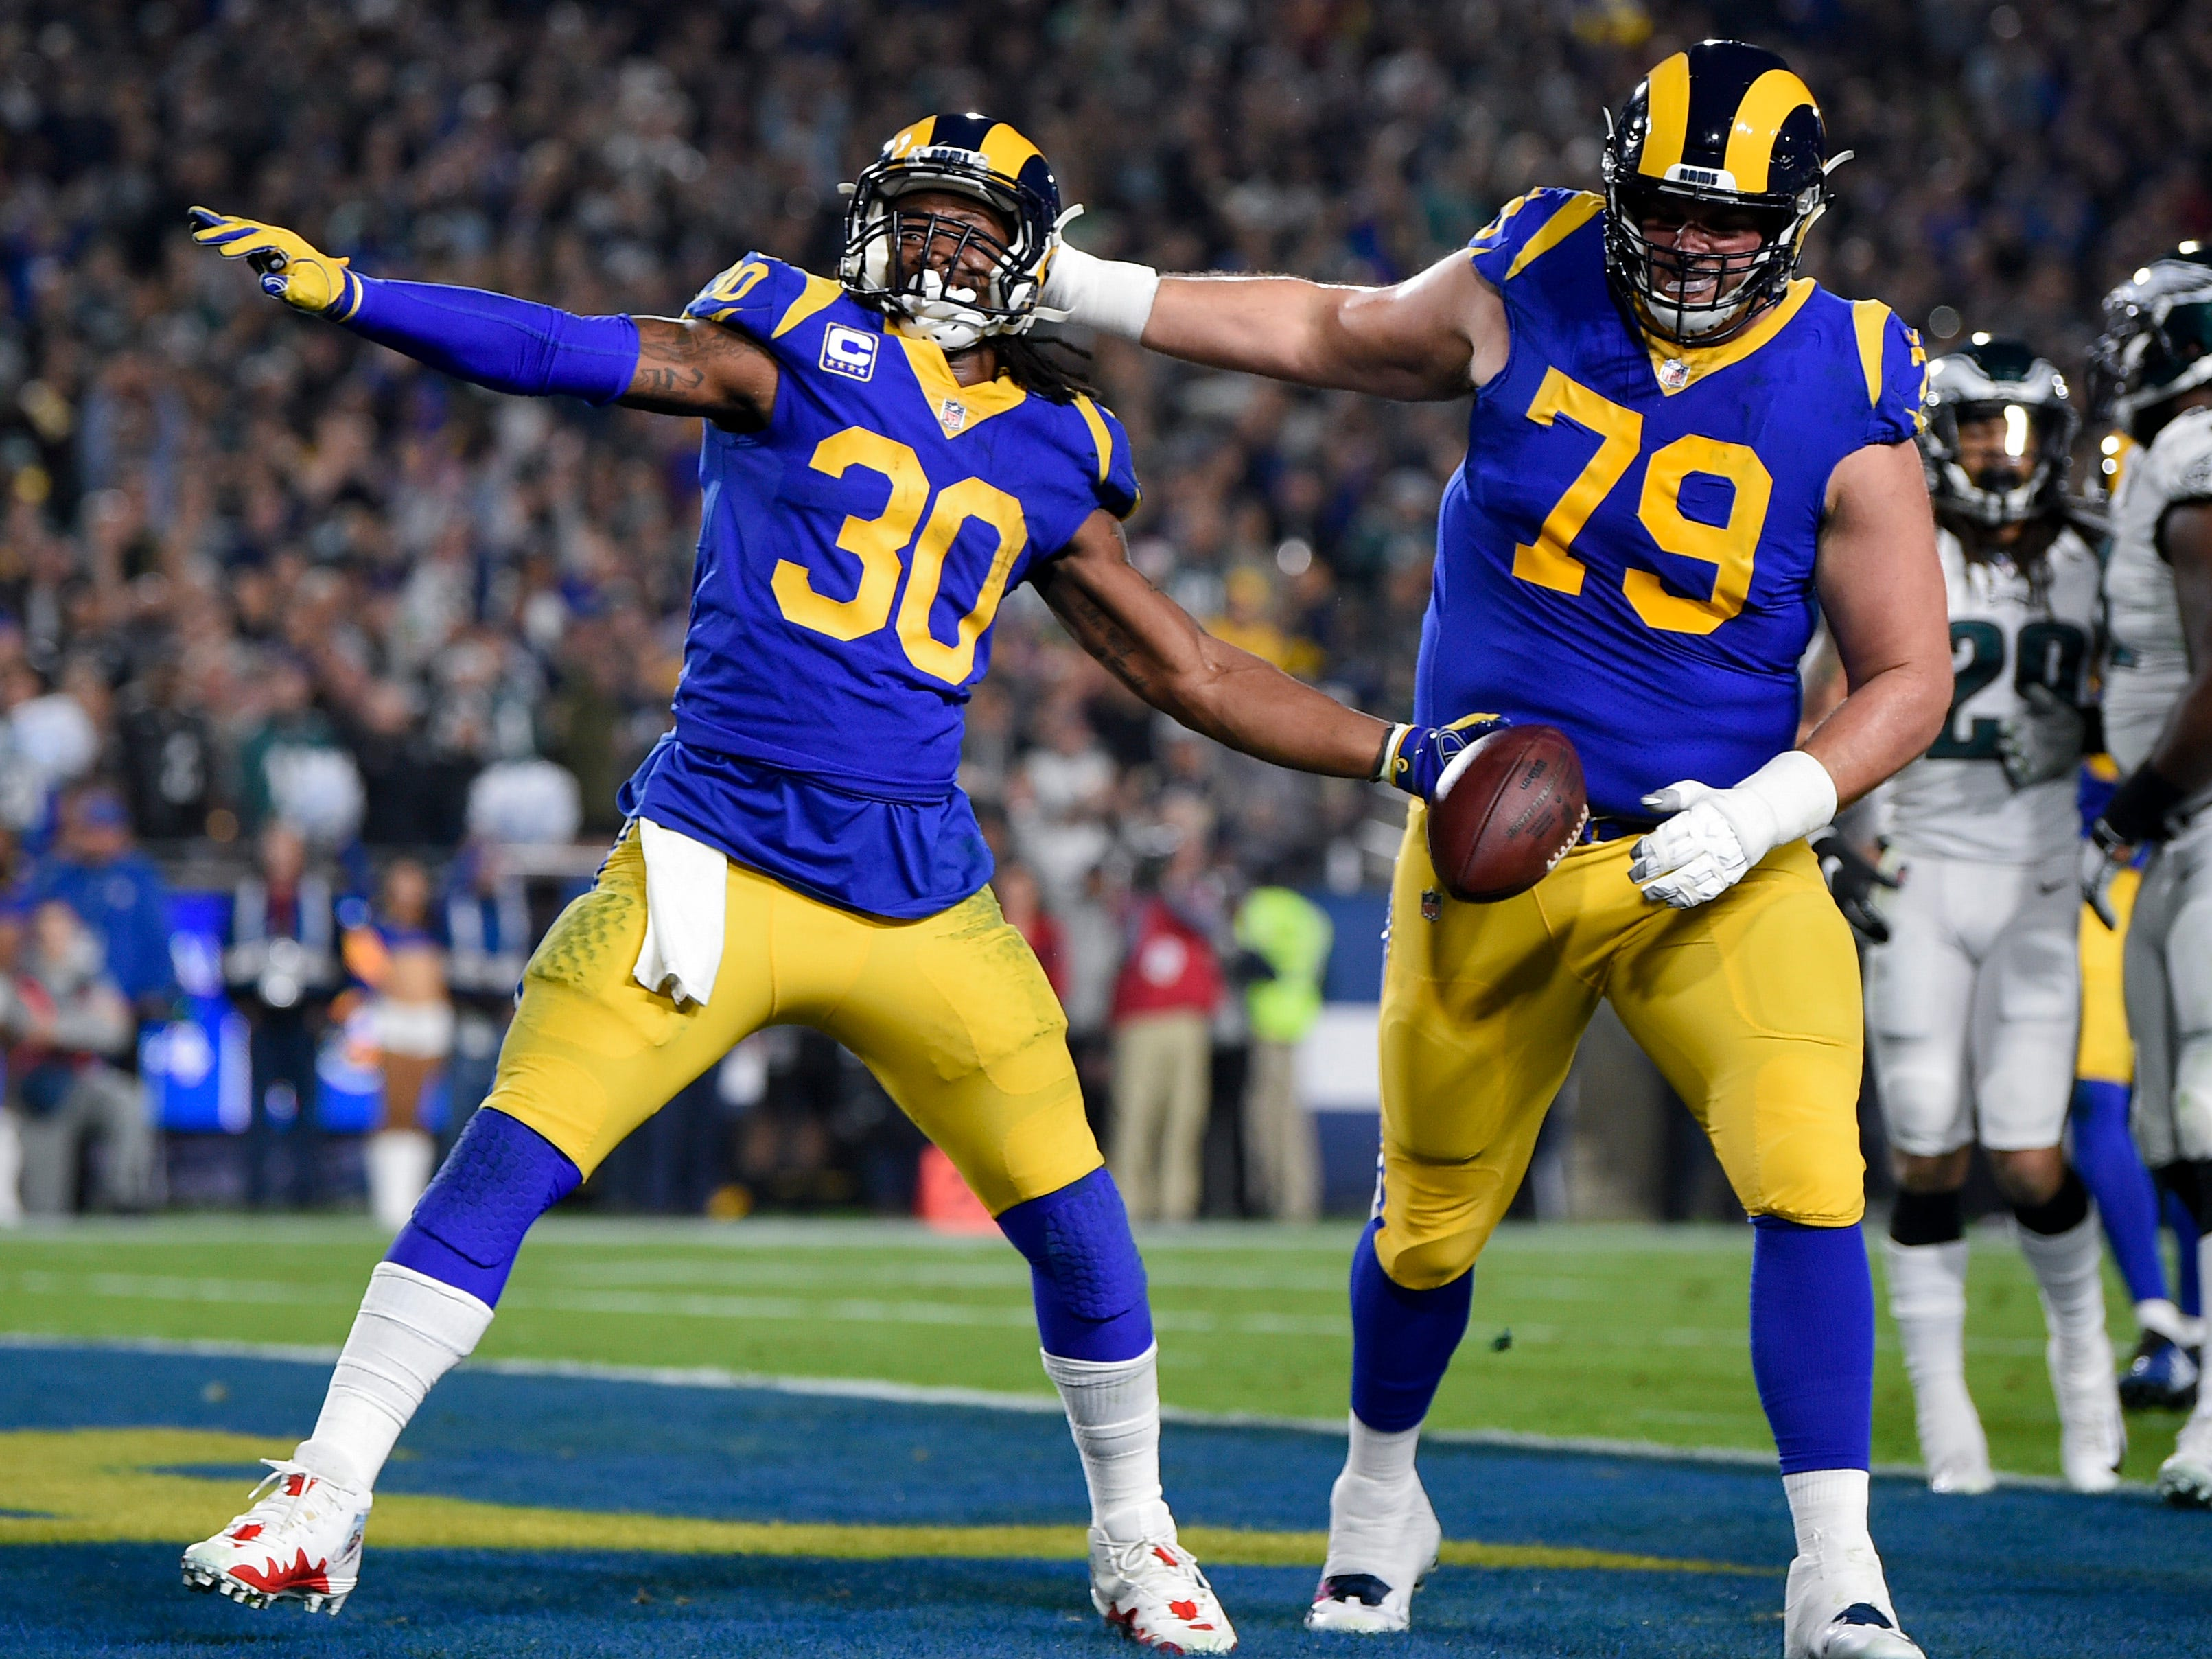 Los Angeles Rams running back Todd Gurley celebrates his touchdown run during the first half against the Philadephia Eagles at Los Angeles Memorial Coliseum.